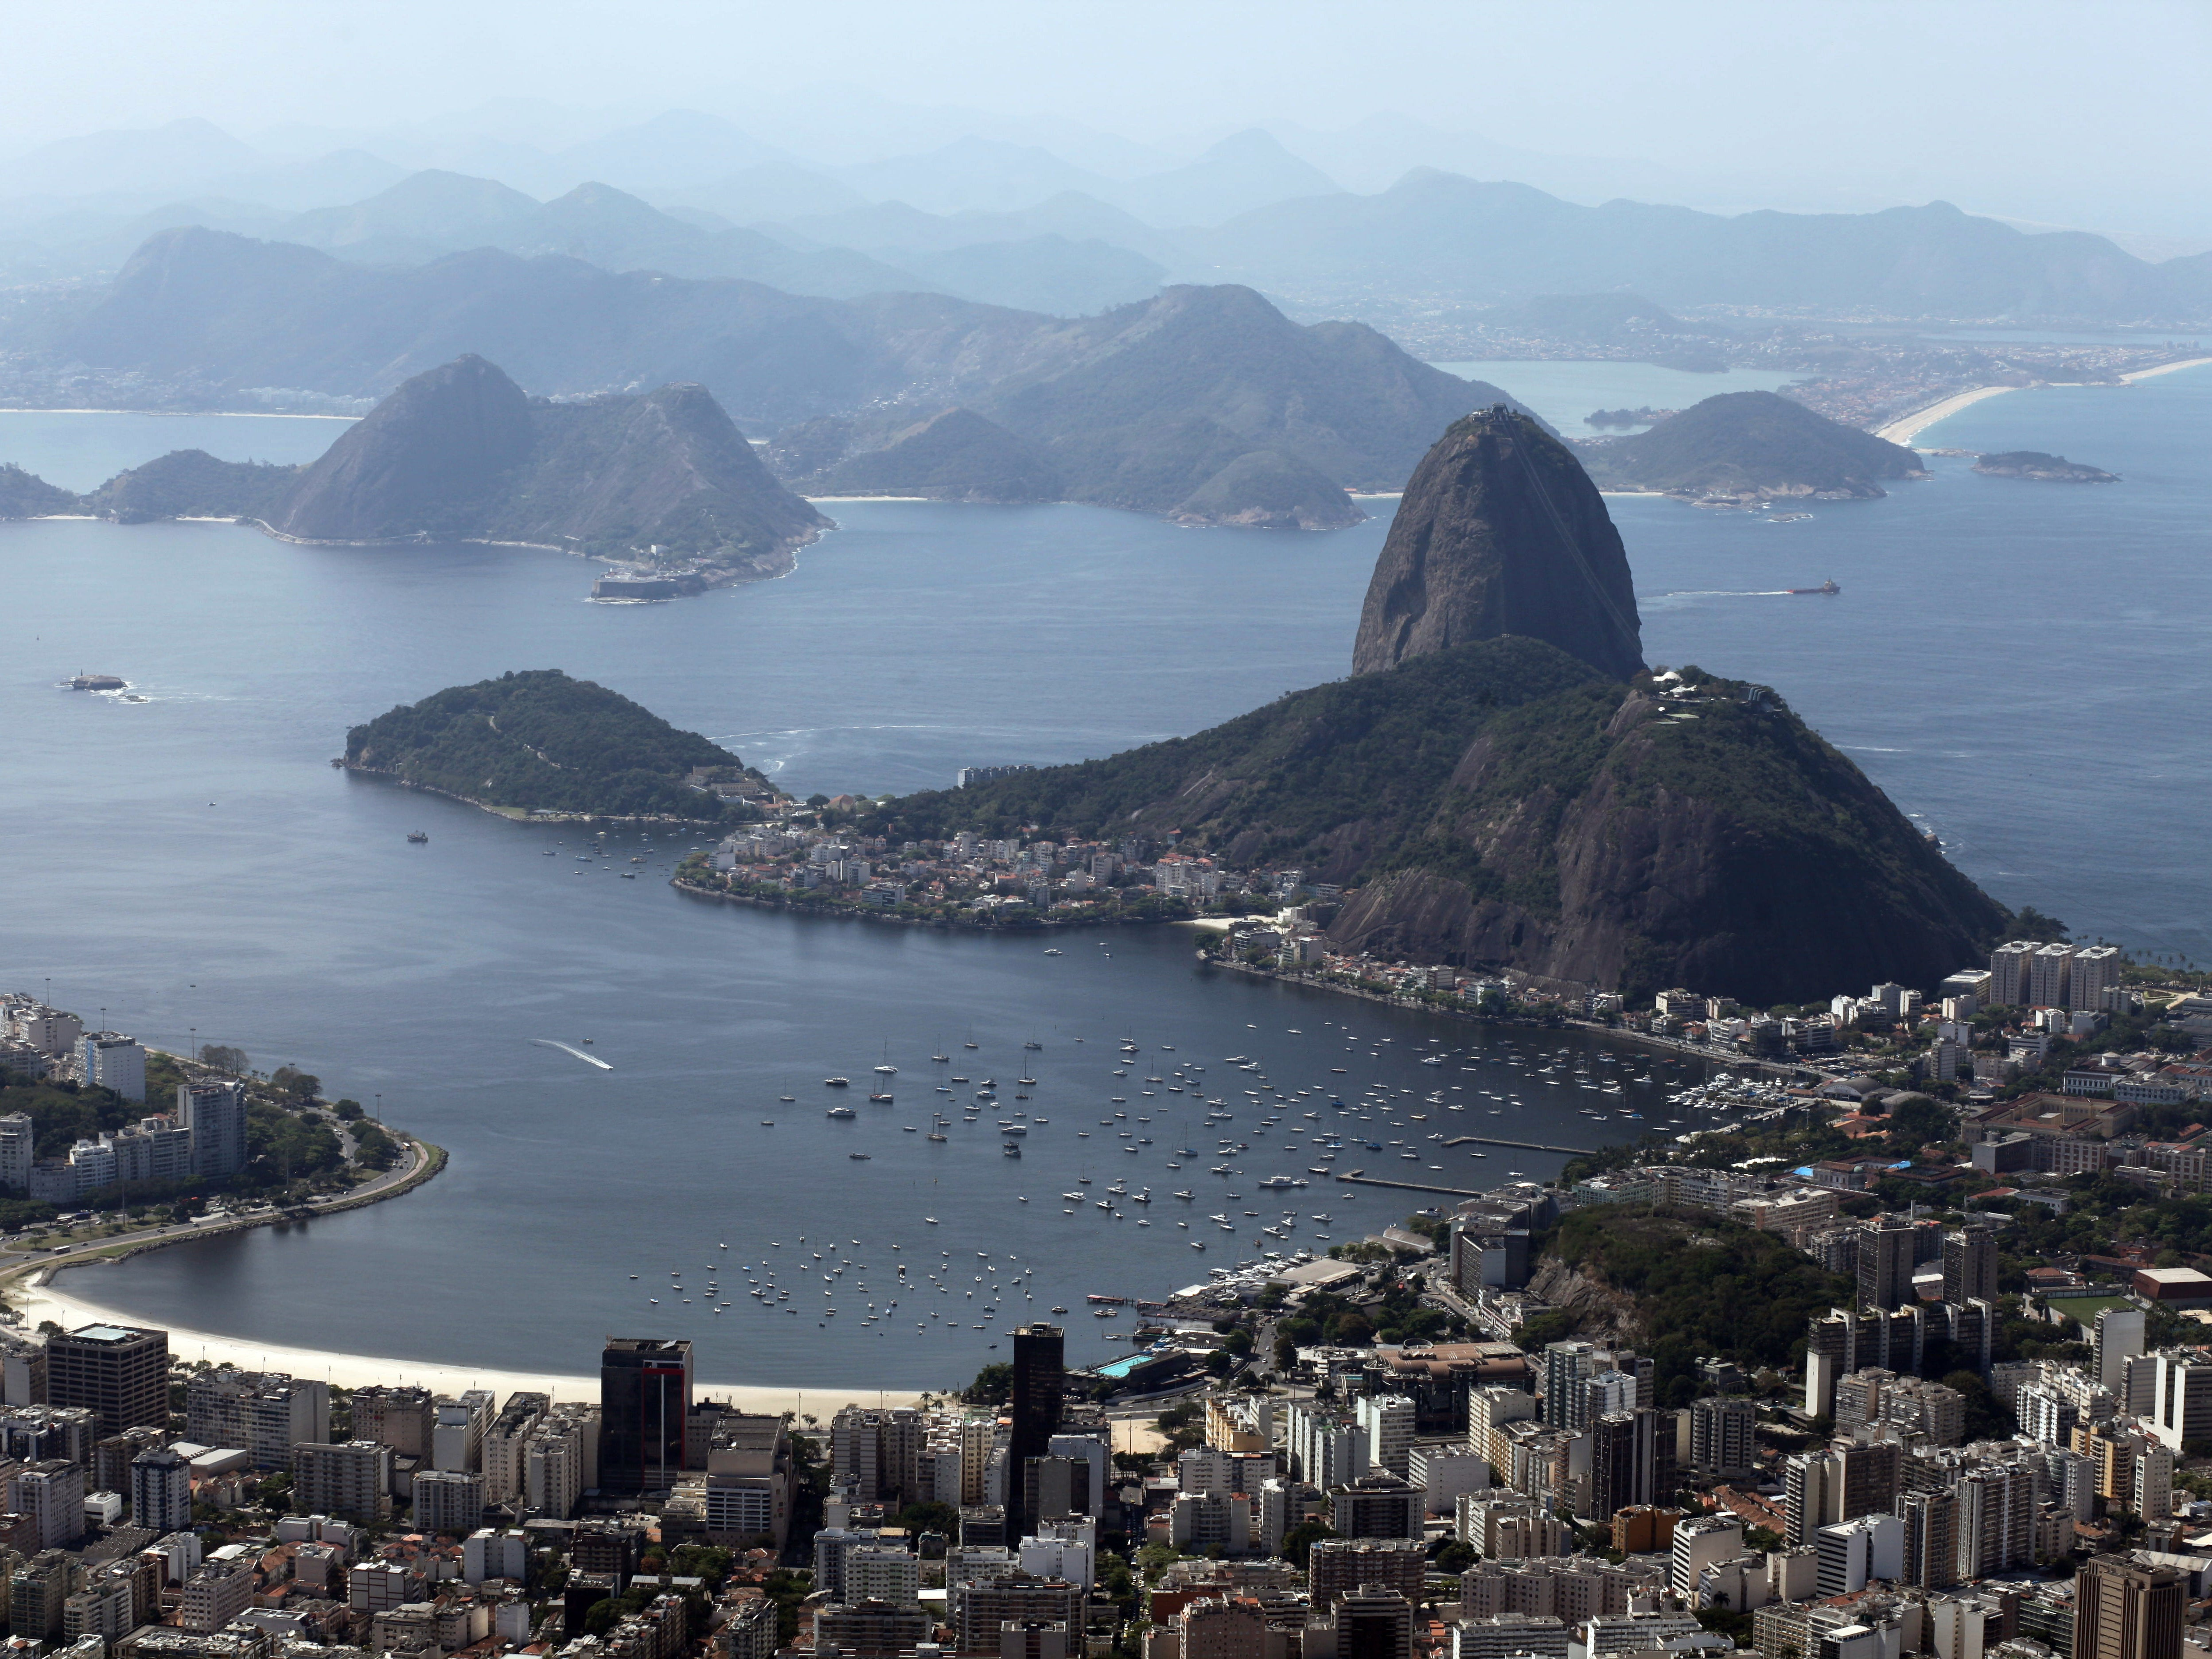 More than 30 men 'rape teenage girl in Rio' and post video